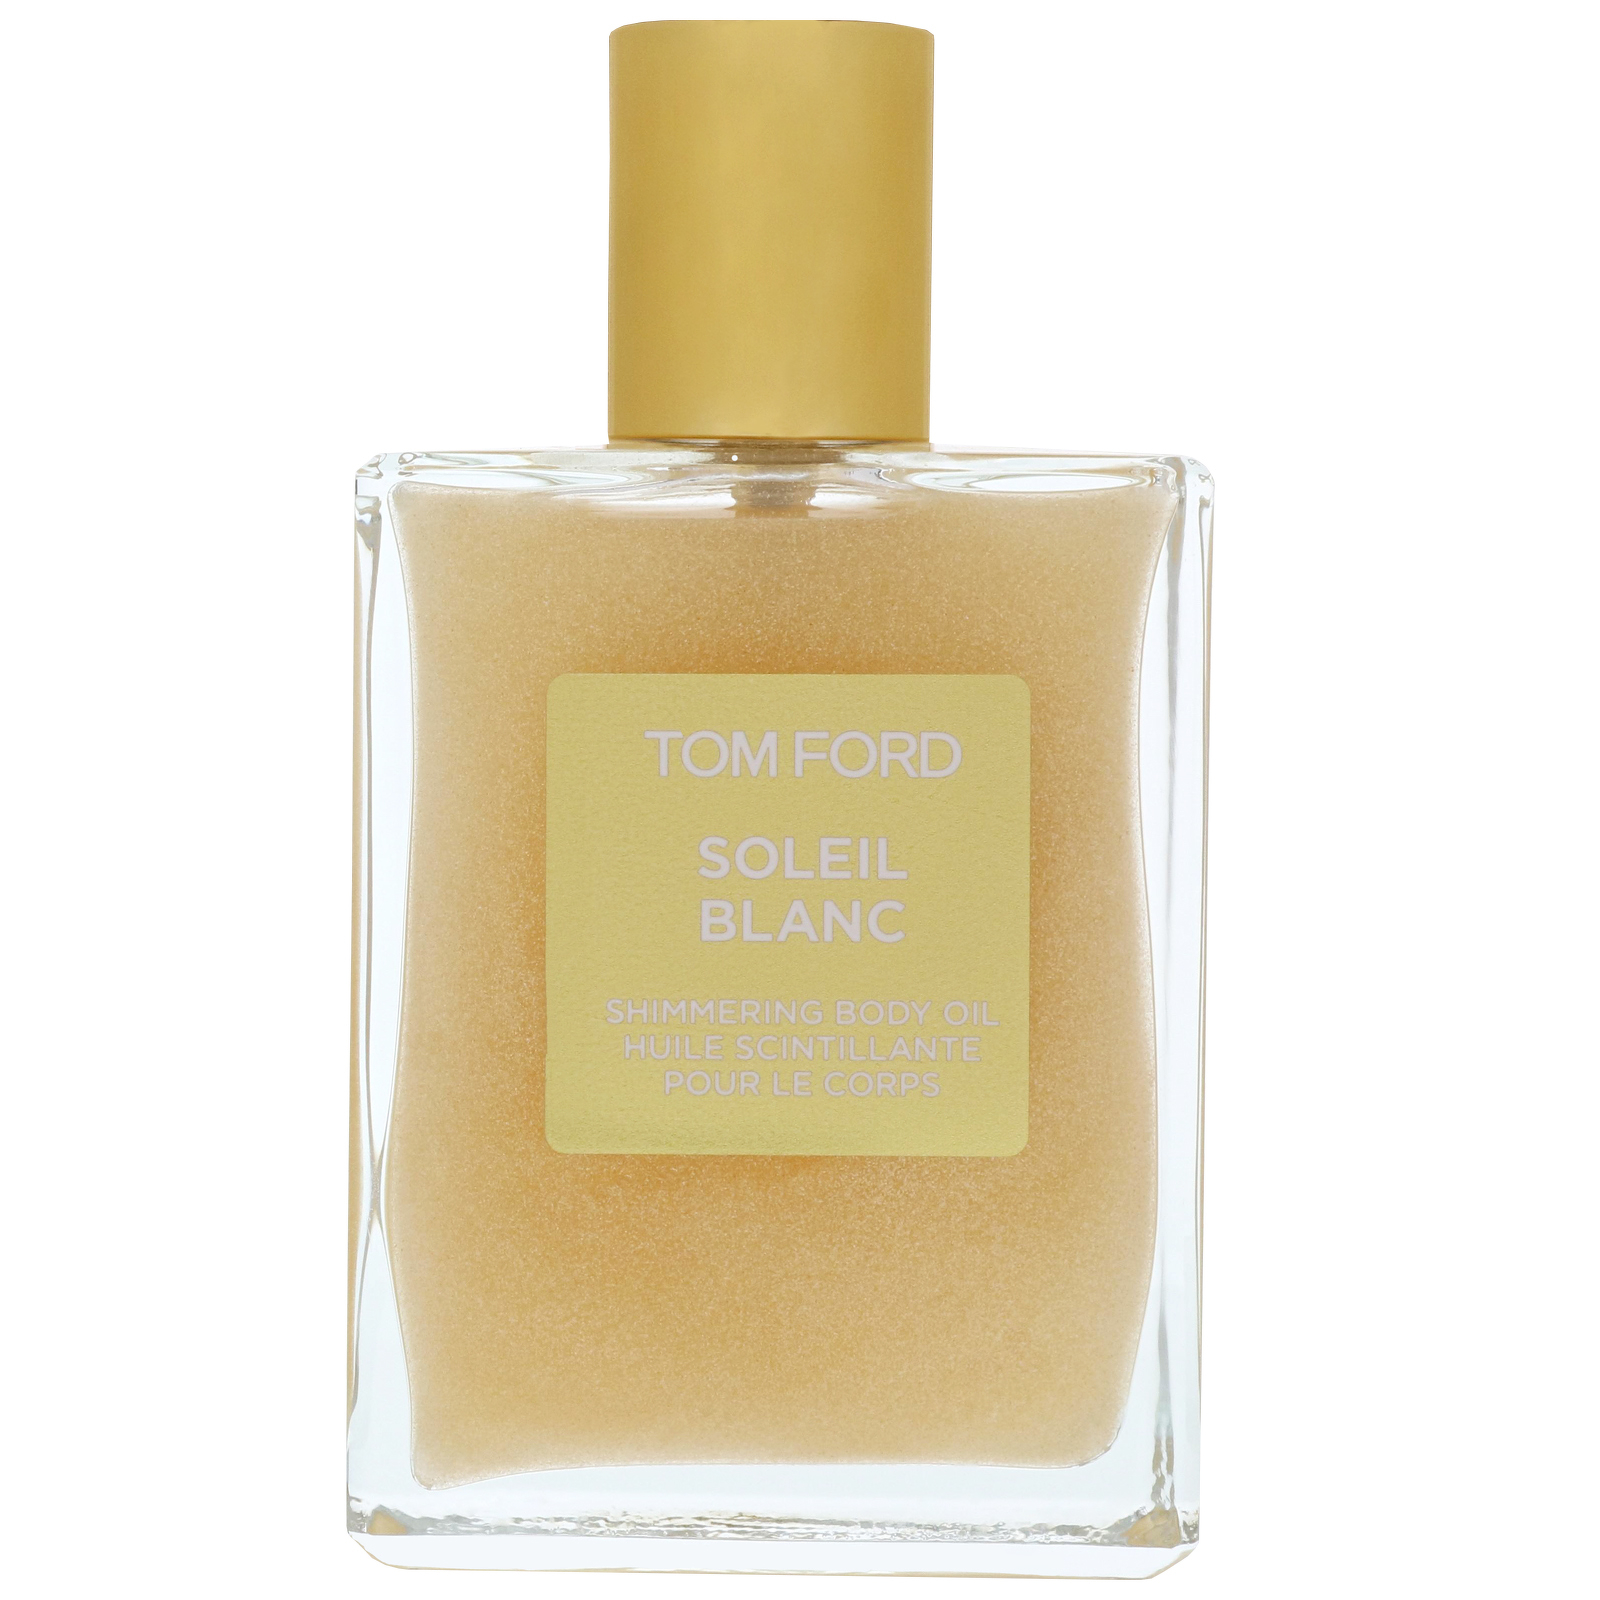 Tom Ford Private Blend Soleil Blanc Shimmering Body Oil 100ml Bath Body